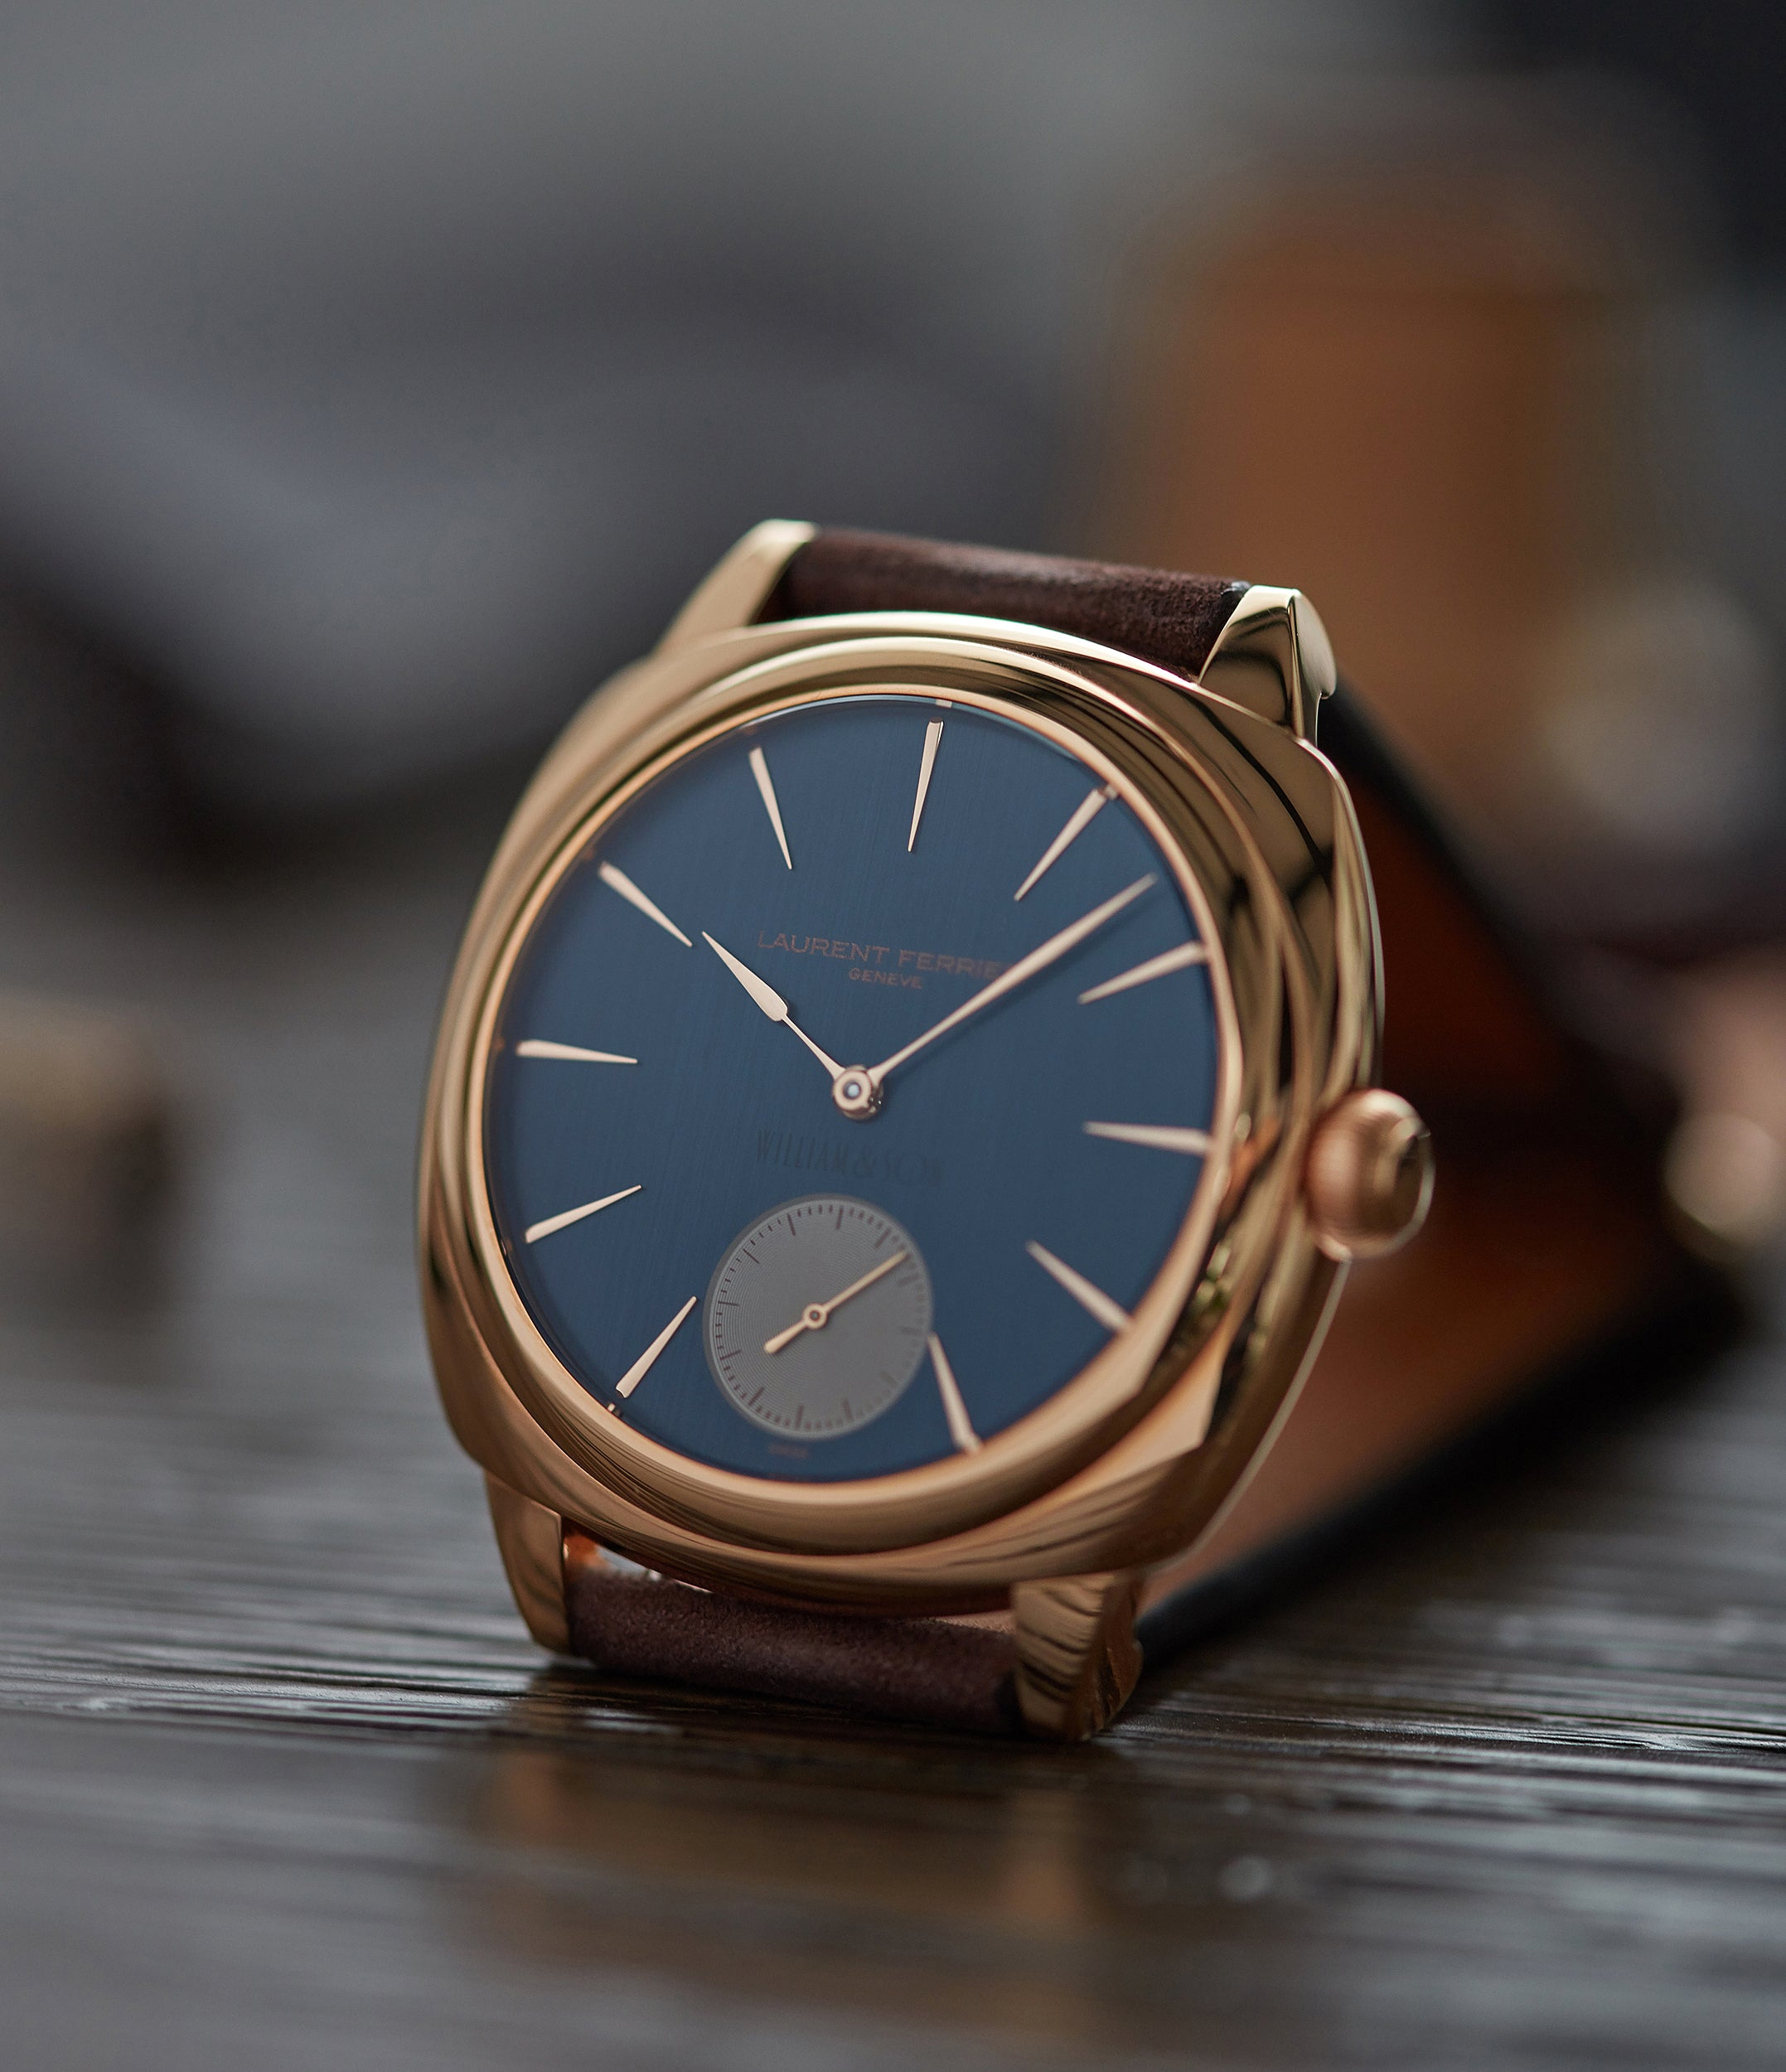 William & Son Laurent Ferrier Galet Square Micro-rotor blue dial rose gold rare luxury dress watch for sale online at A Collected Man London UK specialist and approved reseller of rare independent watchmakers